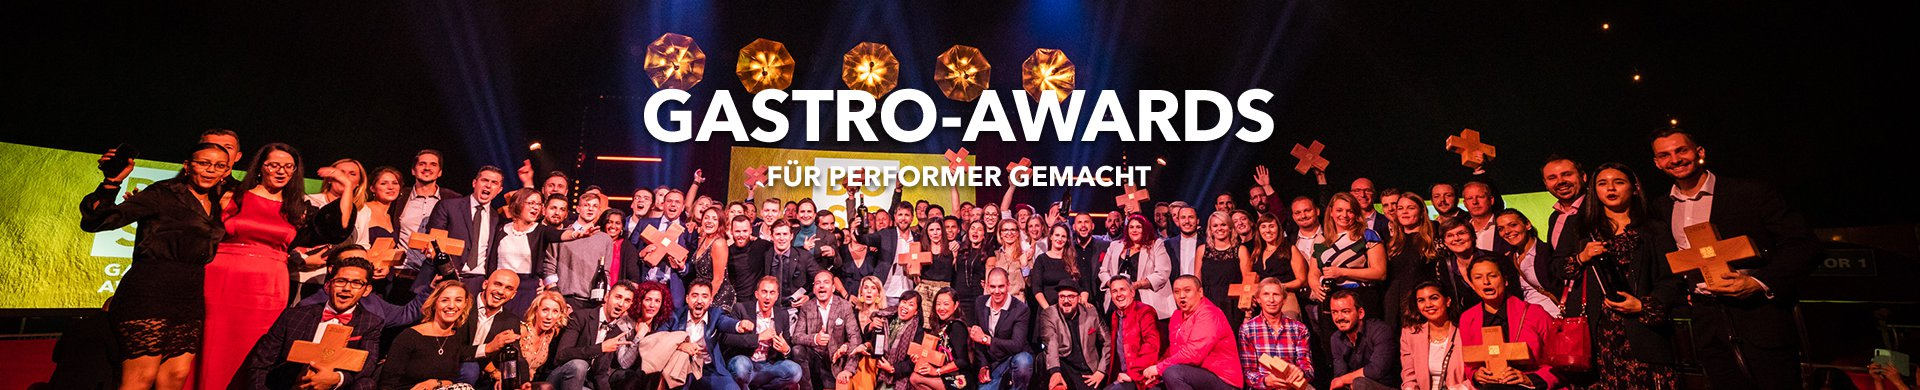 best-of-swiss-gastro-award-night-header-2019-1920x390